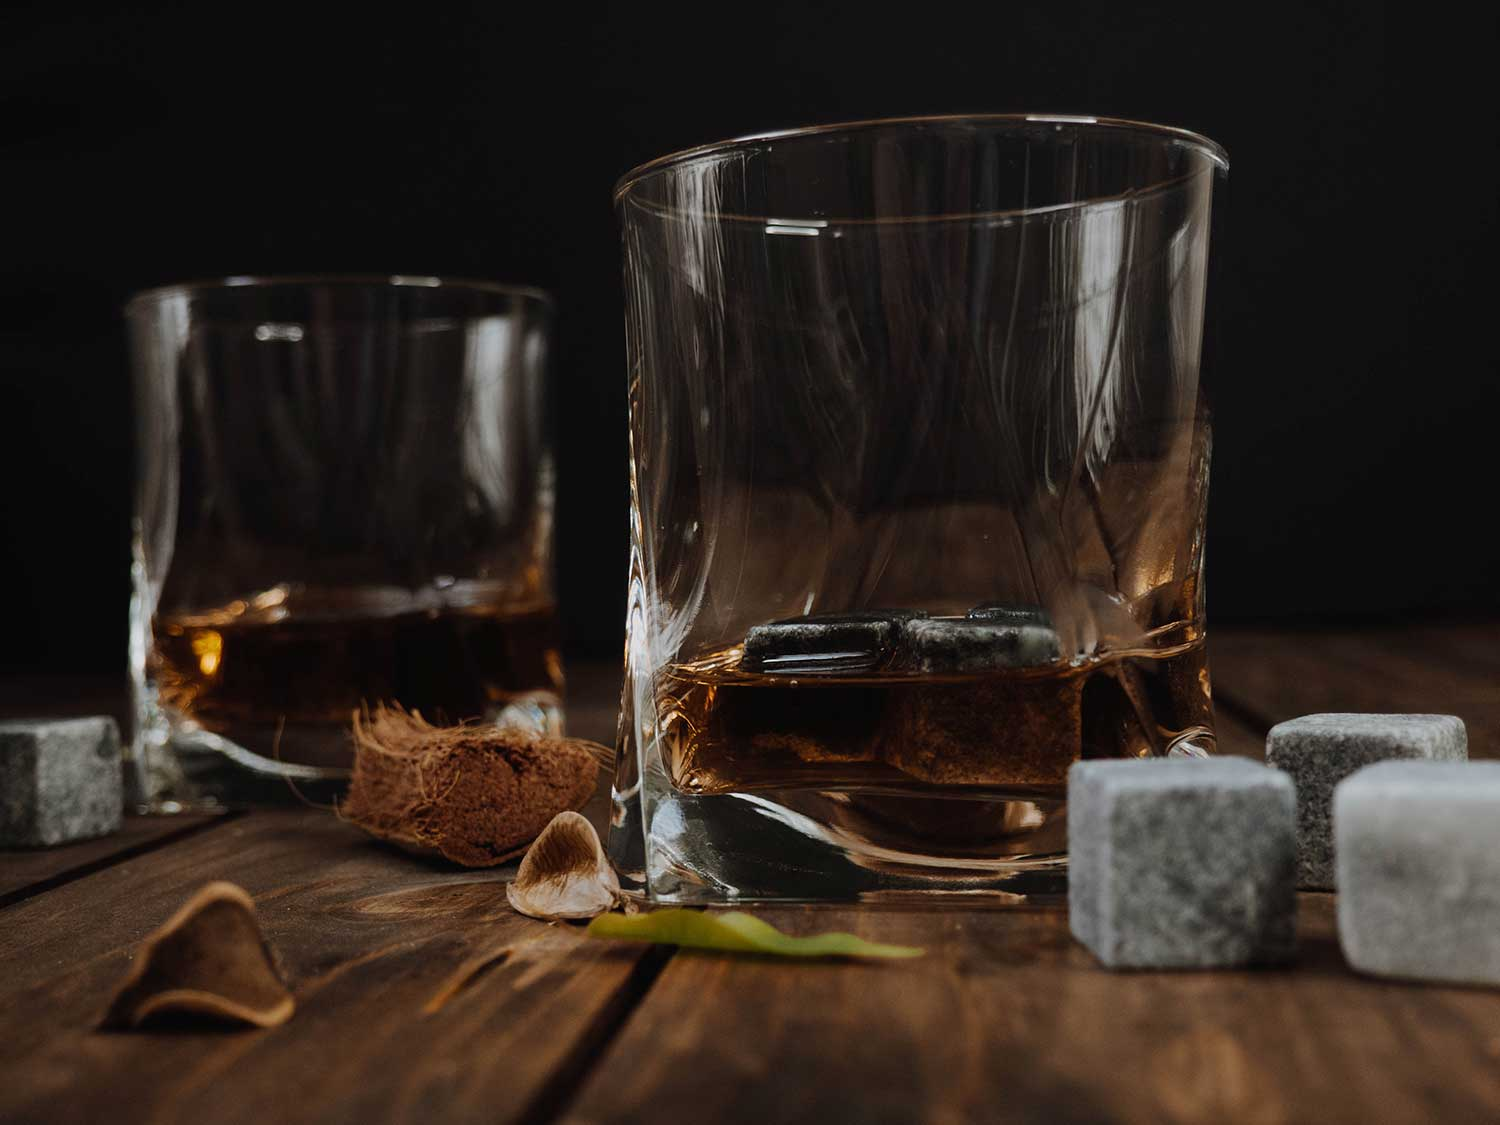 Whiskey in glasses with whiskey stones.